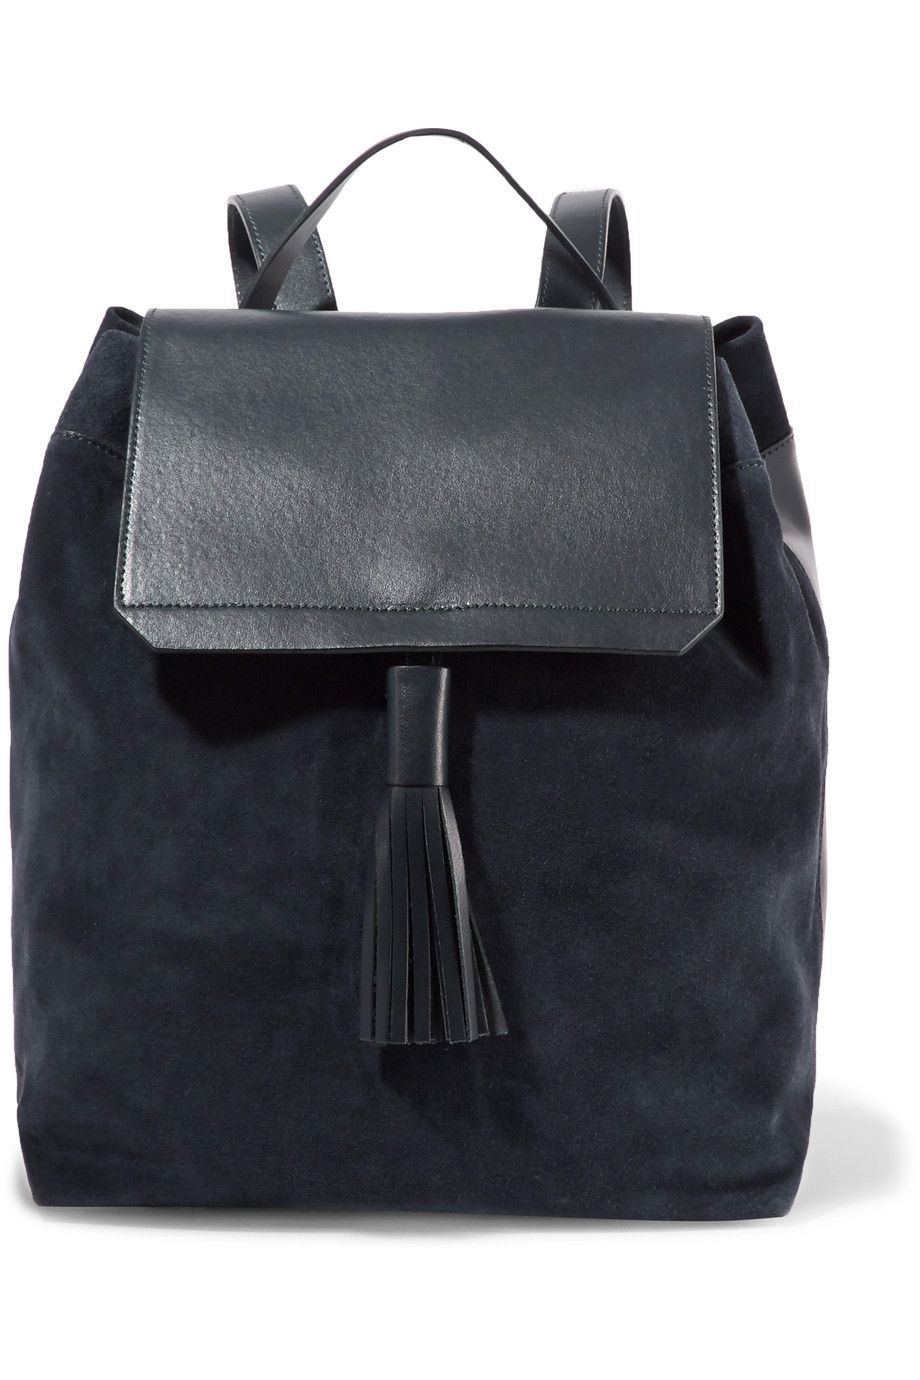 Iris and Ink Leather and suede backpack | Bags | Pinterest ...